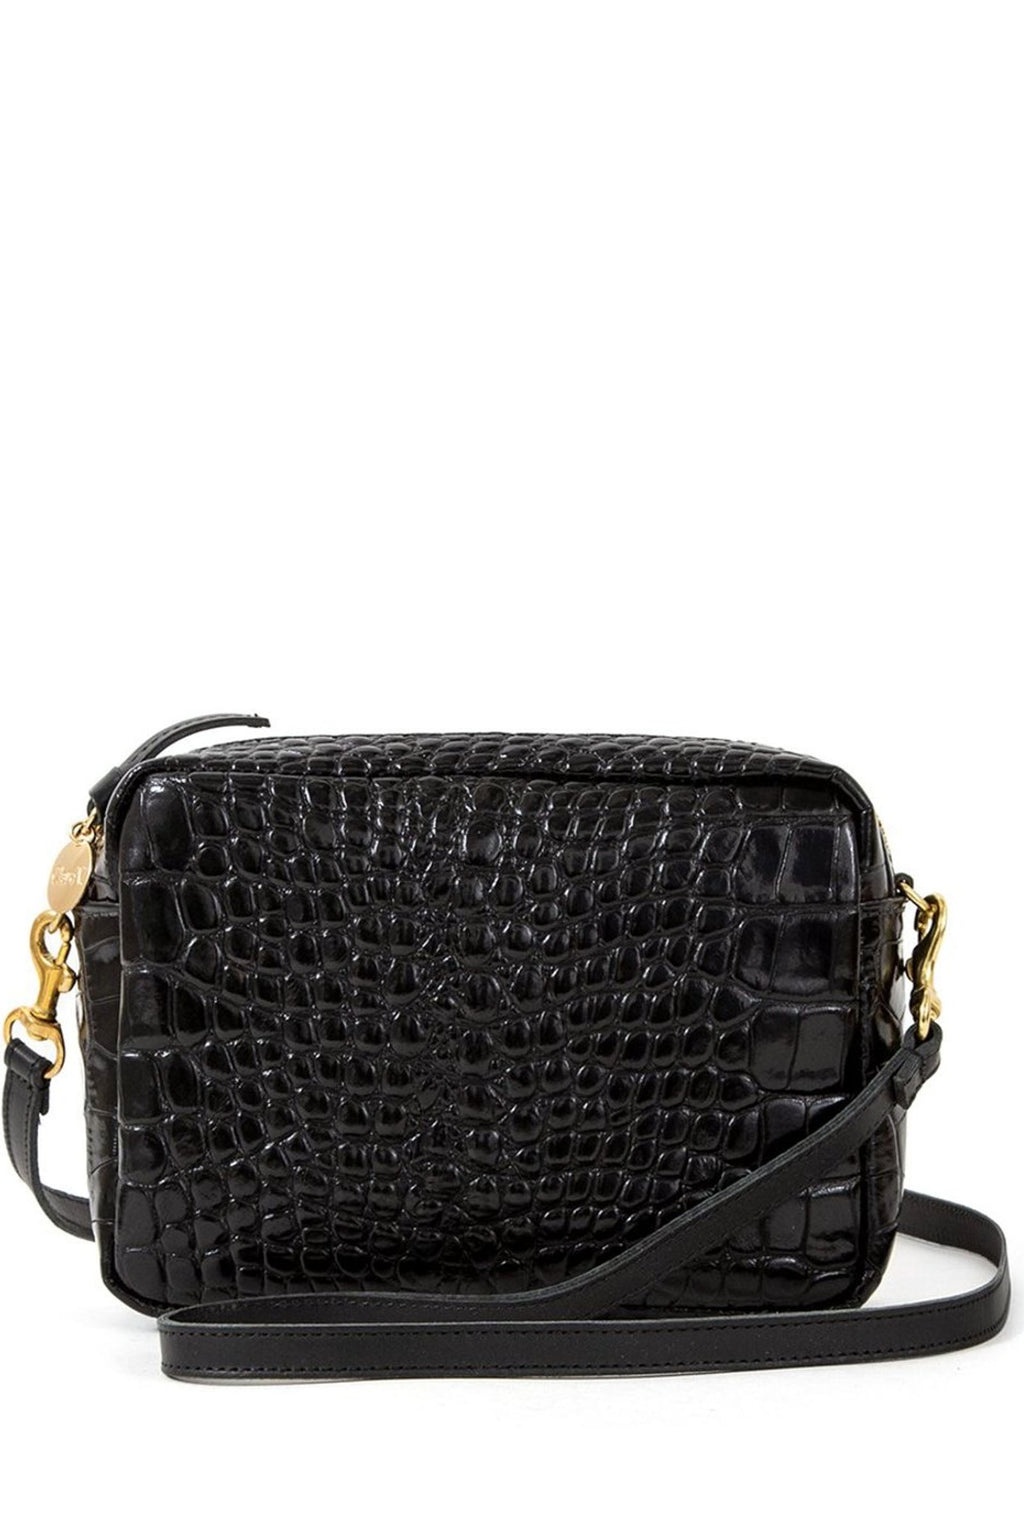 Clare Vivier Midi Sac Crossbody in Croco-Black